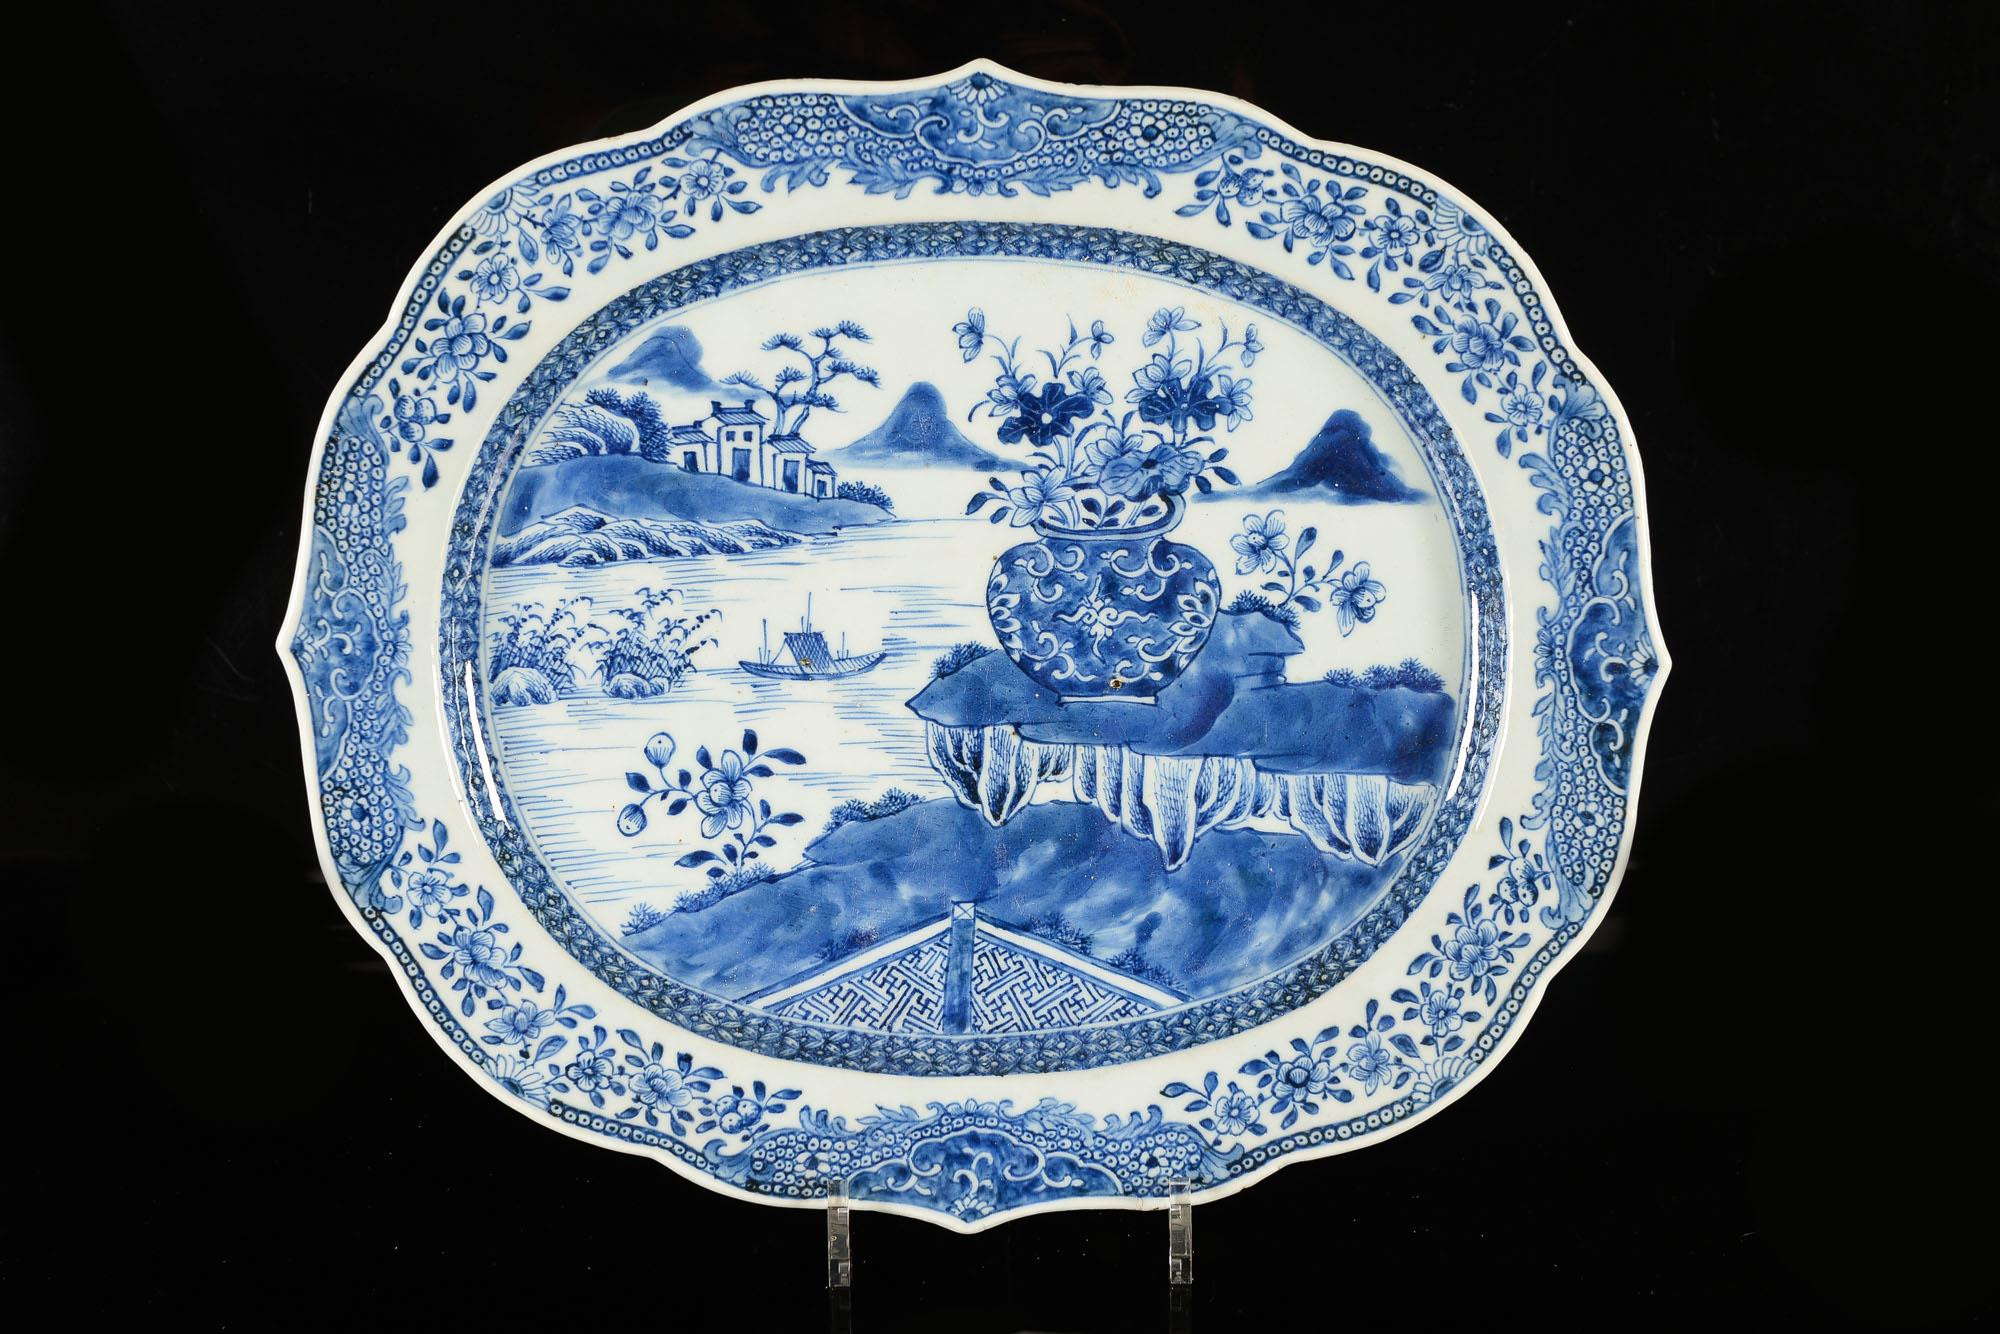 large blue and white chinese vases of 51bidlive a large blue and white porcelain dish decorated with a within a large blue and white porcelain dish decorated with a river landscape and a vase with flowers marked with seal mark in double circle china